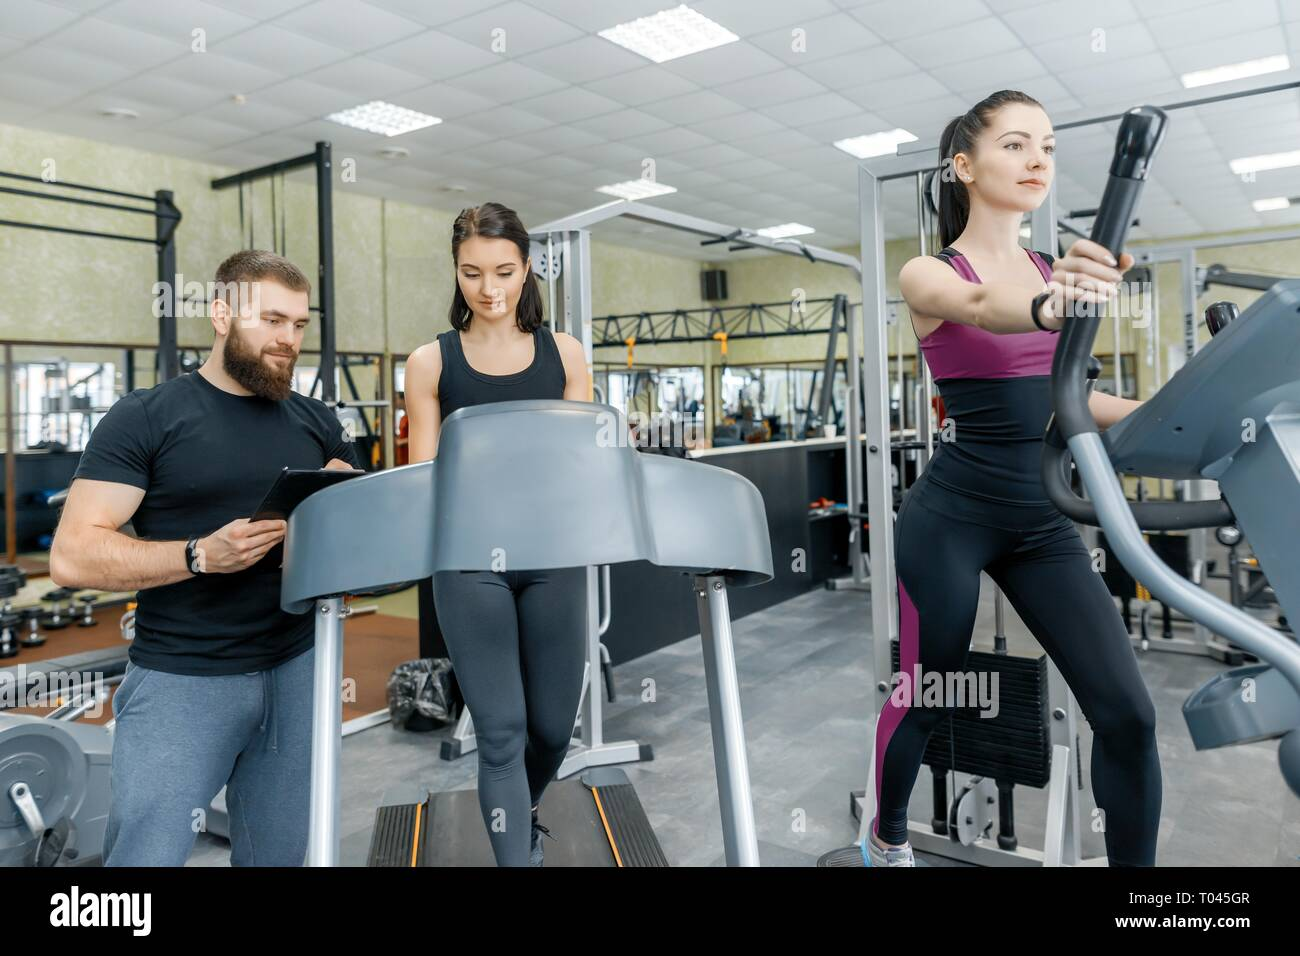 Young smiling fitness women with personal trainer an adult athletic man on treadmill in the gym. Sport, teamwork, training, healthy lifestyle concept - Stock Image